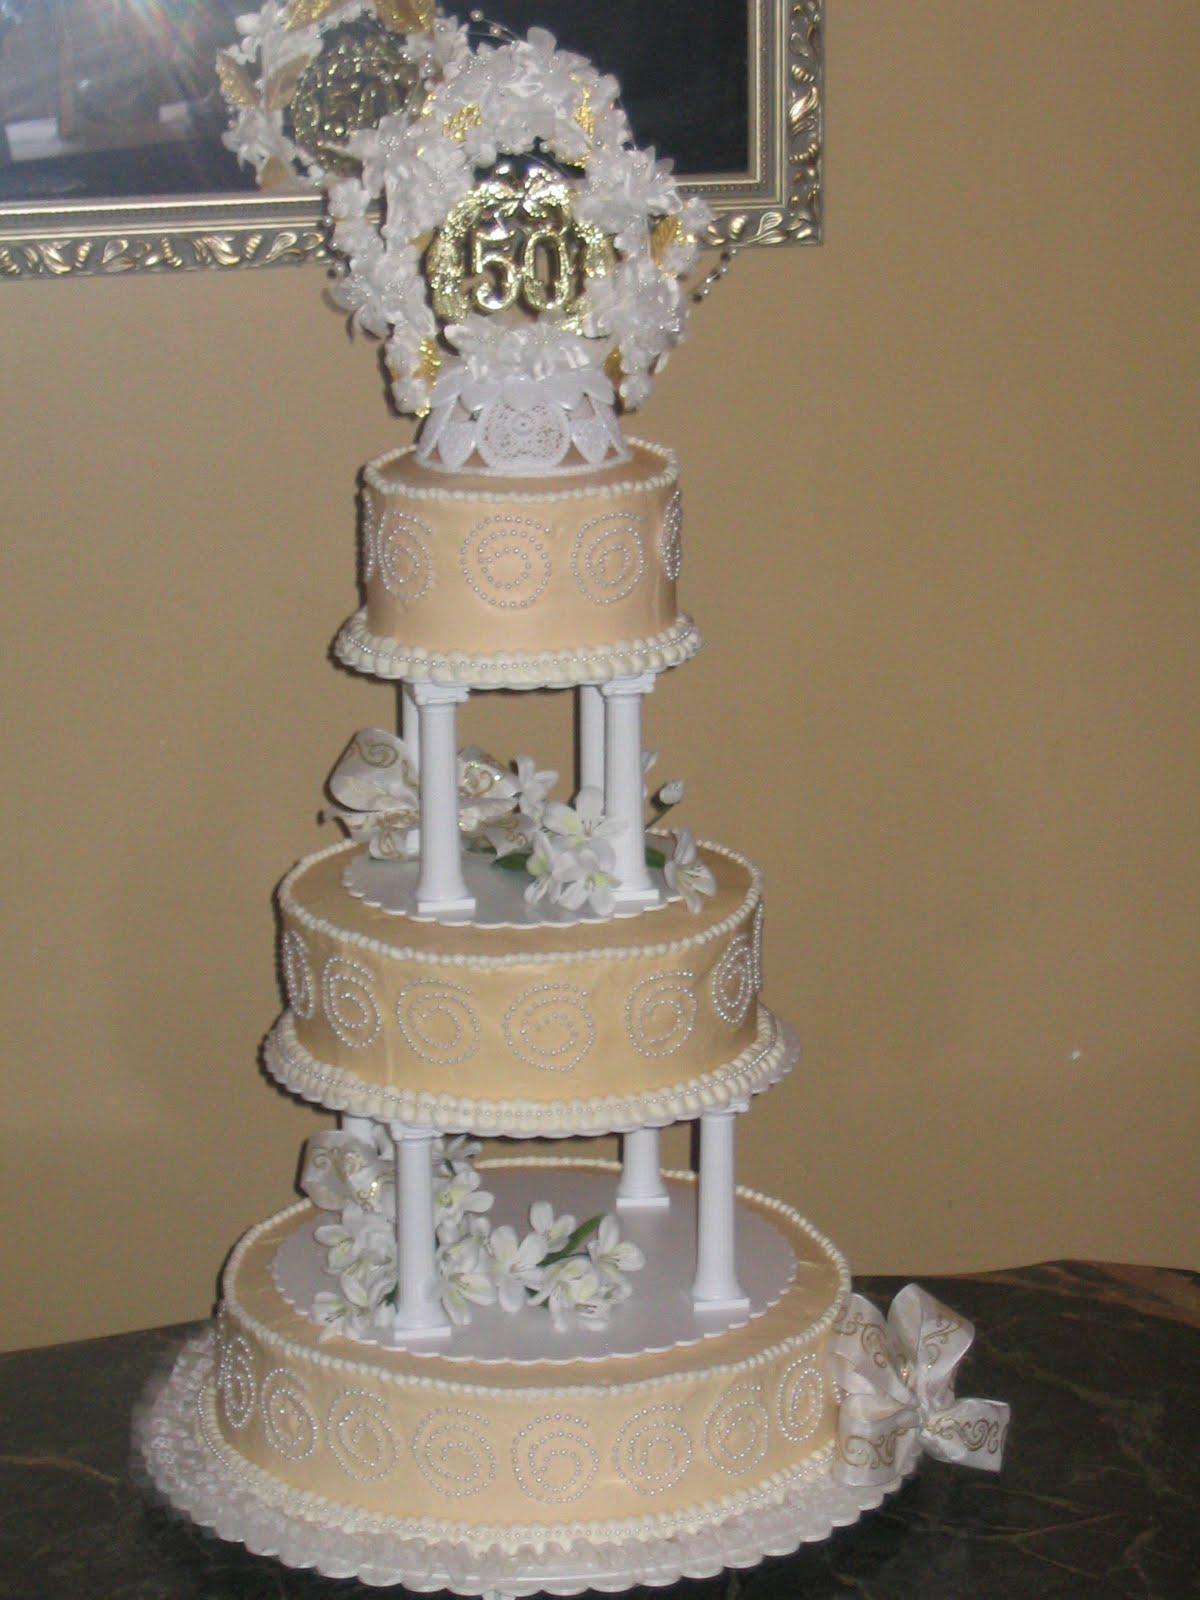 50th wedding anniversary cakes